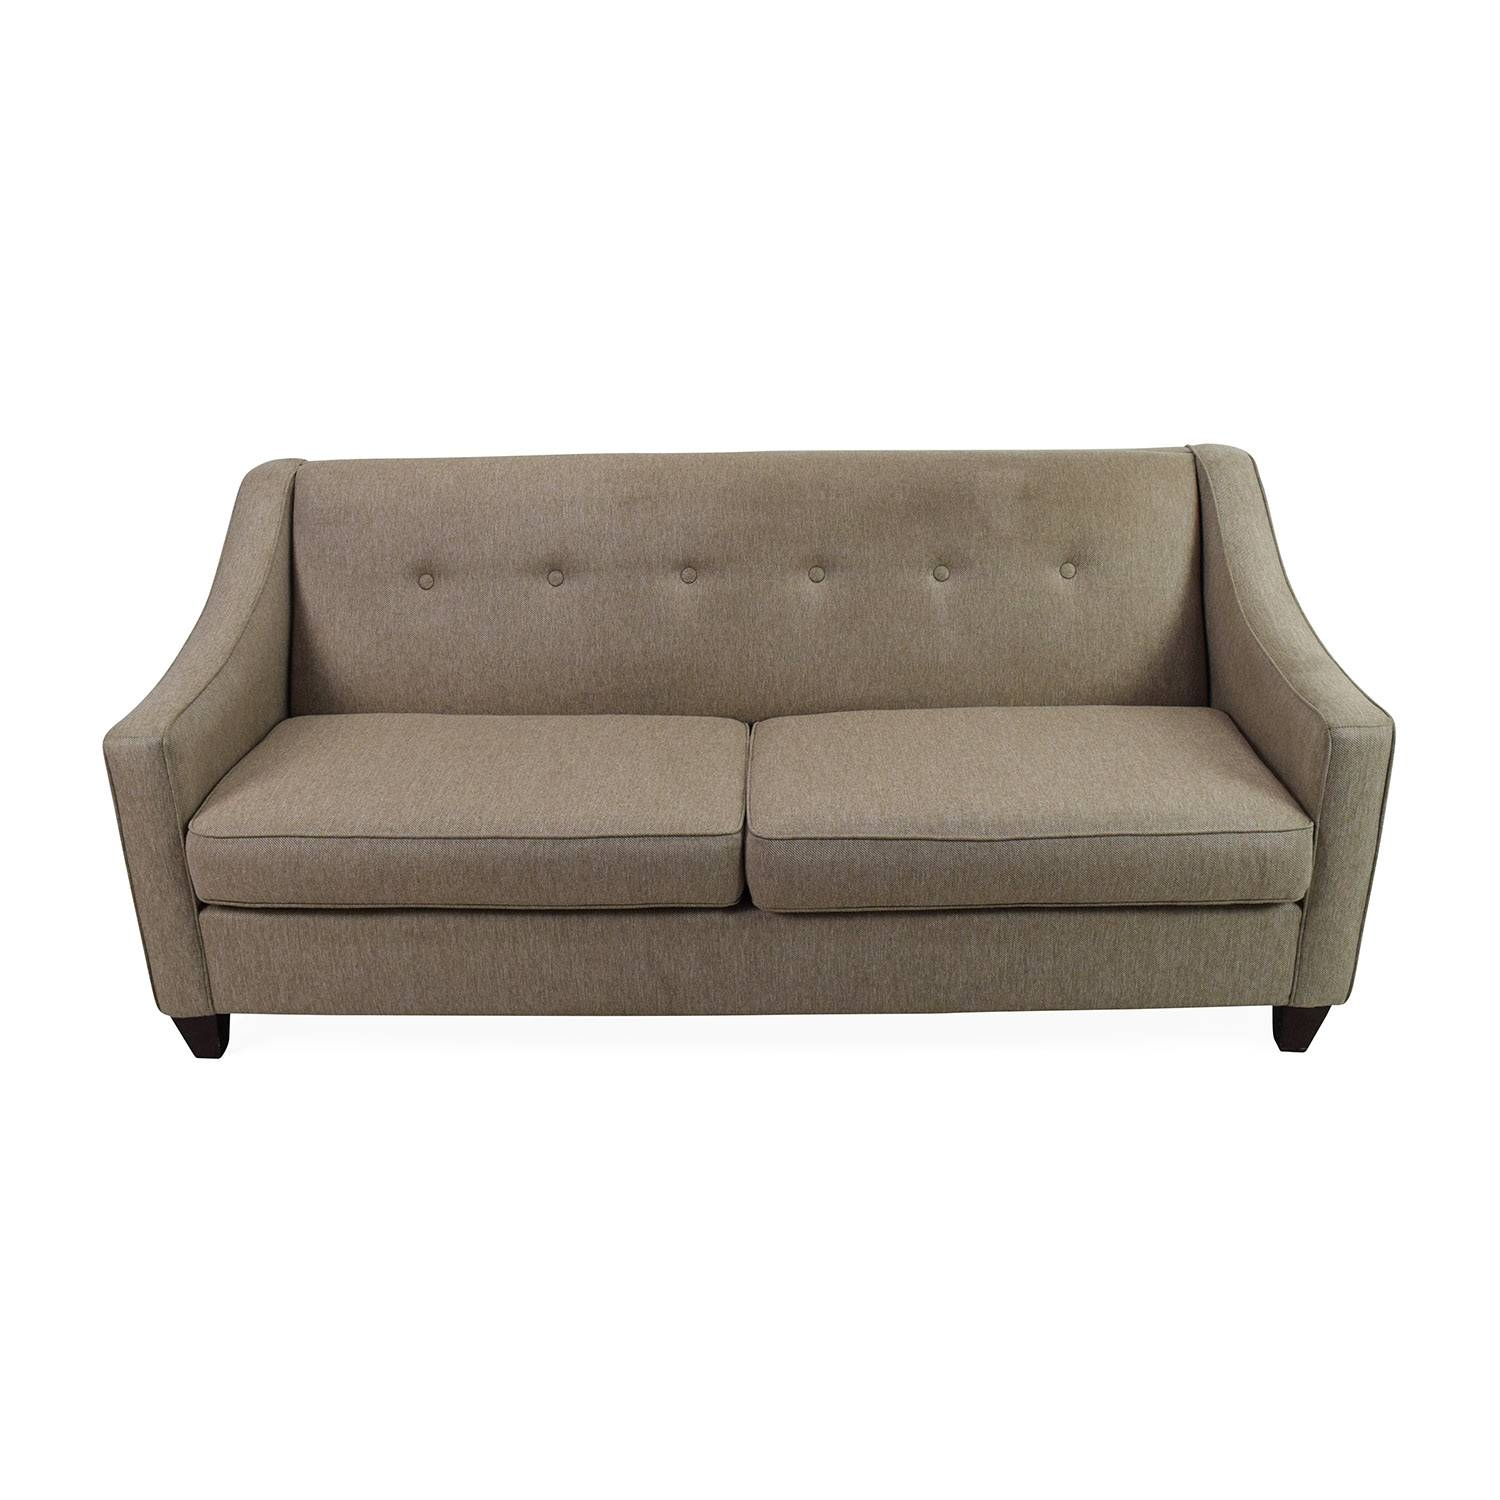 81% Off   Raymour And Flanigan Raymour & Flanigan Ashton Sofa / Sofas For Ashton Sofas (Photo 2 of 15)